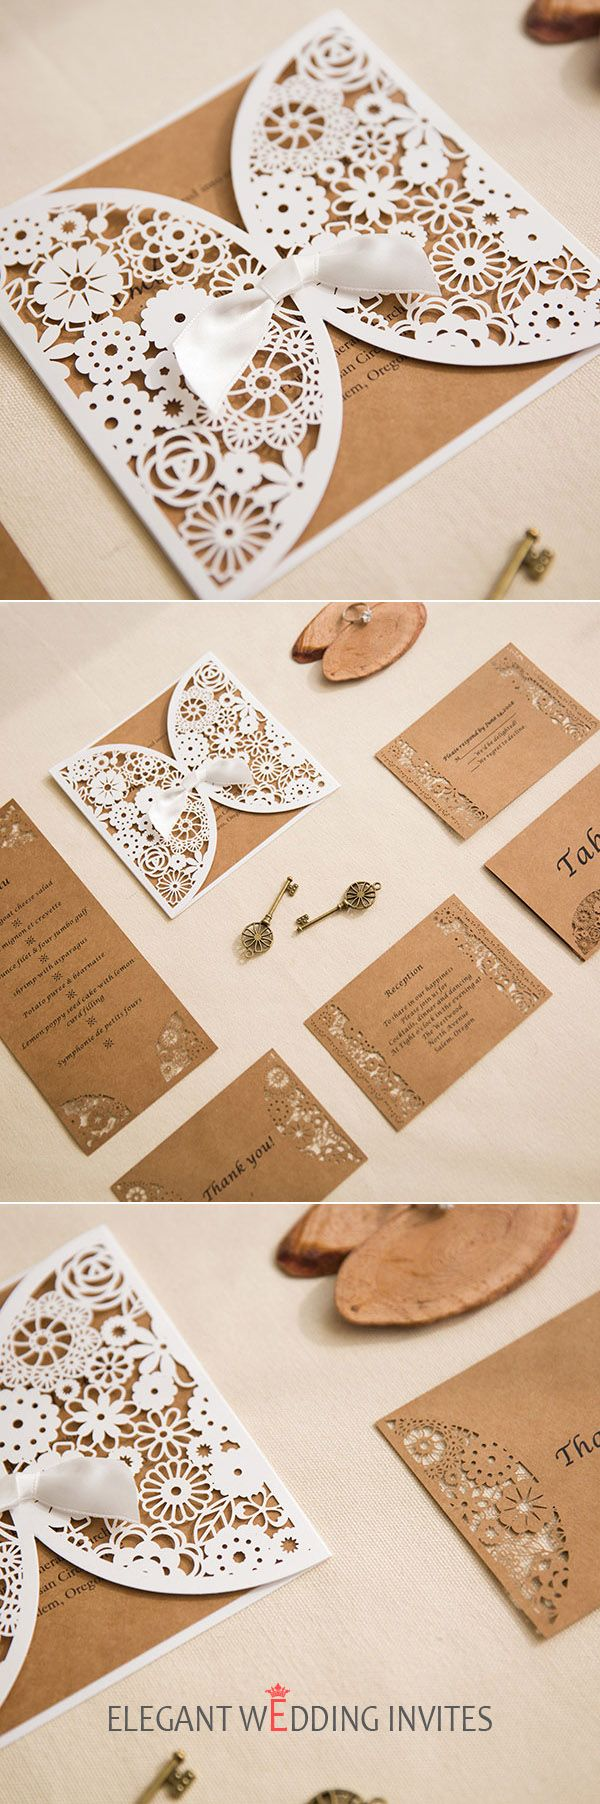 elegant vintage laser cut wedding invites with